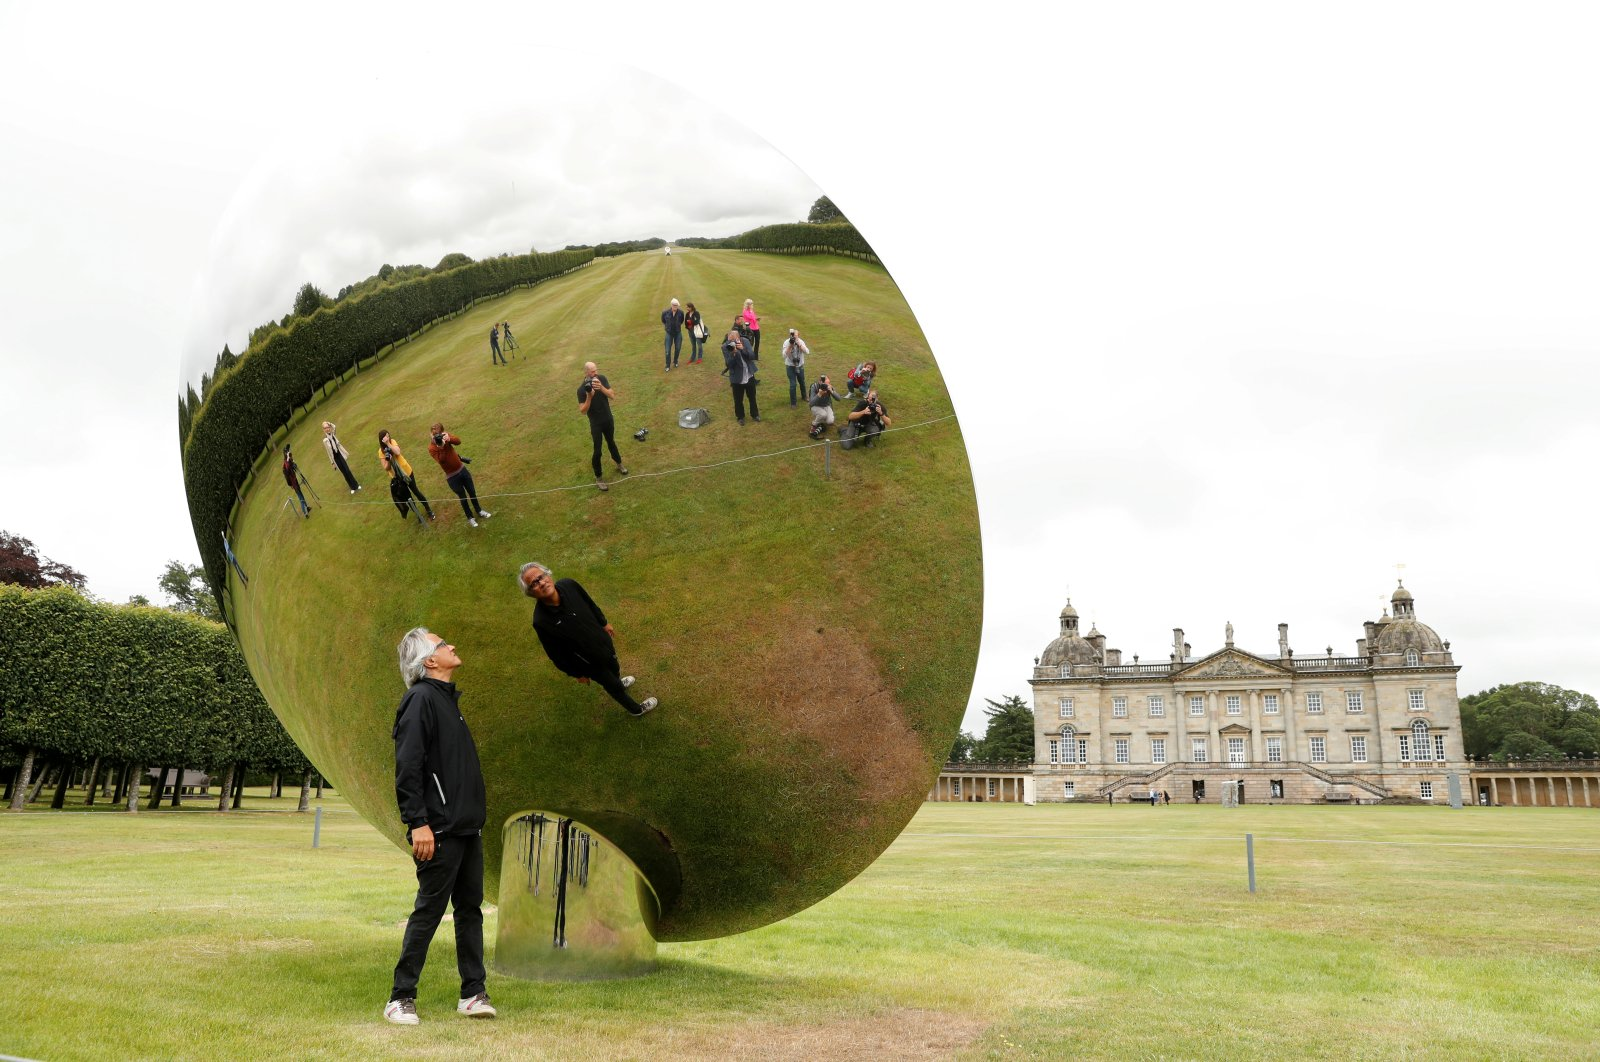 British-Indian artist Anish Kapoor is reflected in one of his sculptures as he poses for photographs in the gardens at Houghton Hall in Norfolk, Britain, July 9, 2020. (REUTERS PHOTO)